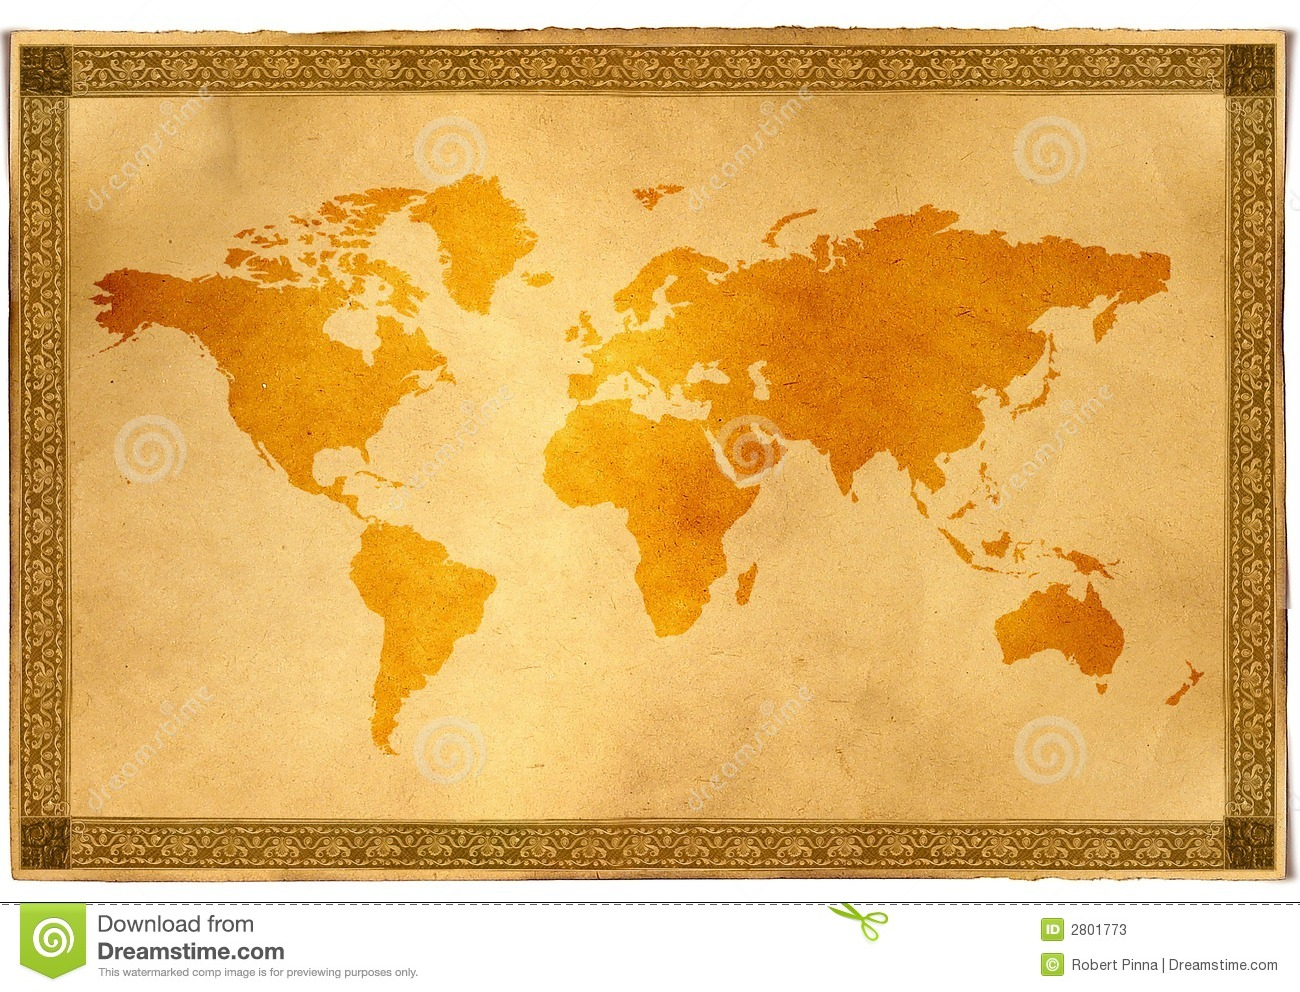 world map sepia with Stock Photos Antique World Map Image2801773 on 5081749939 besides 3310362522 in addition Stockbilder Alte Wel arte Image11281434 besides Stock Photos Antique World Map Image2801773 in addition Papier Peint Ancienne Map Monde 3528.